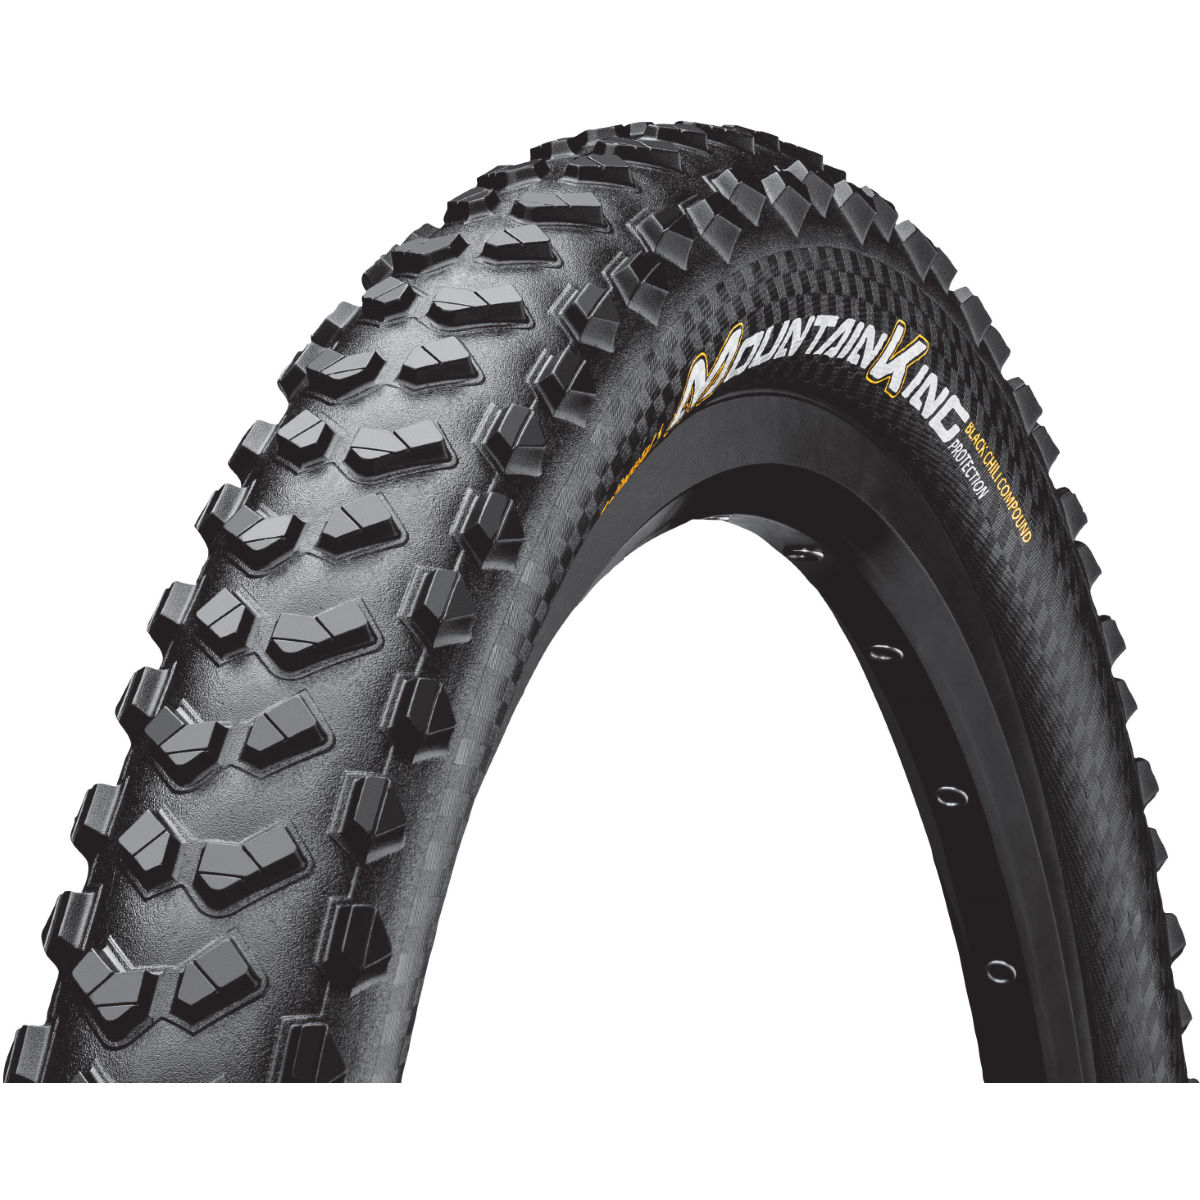 Pneu VTT Continental Mountain King (souple, ProTection, 2018) - Noir